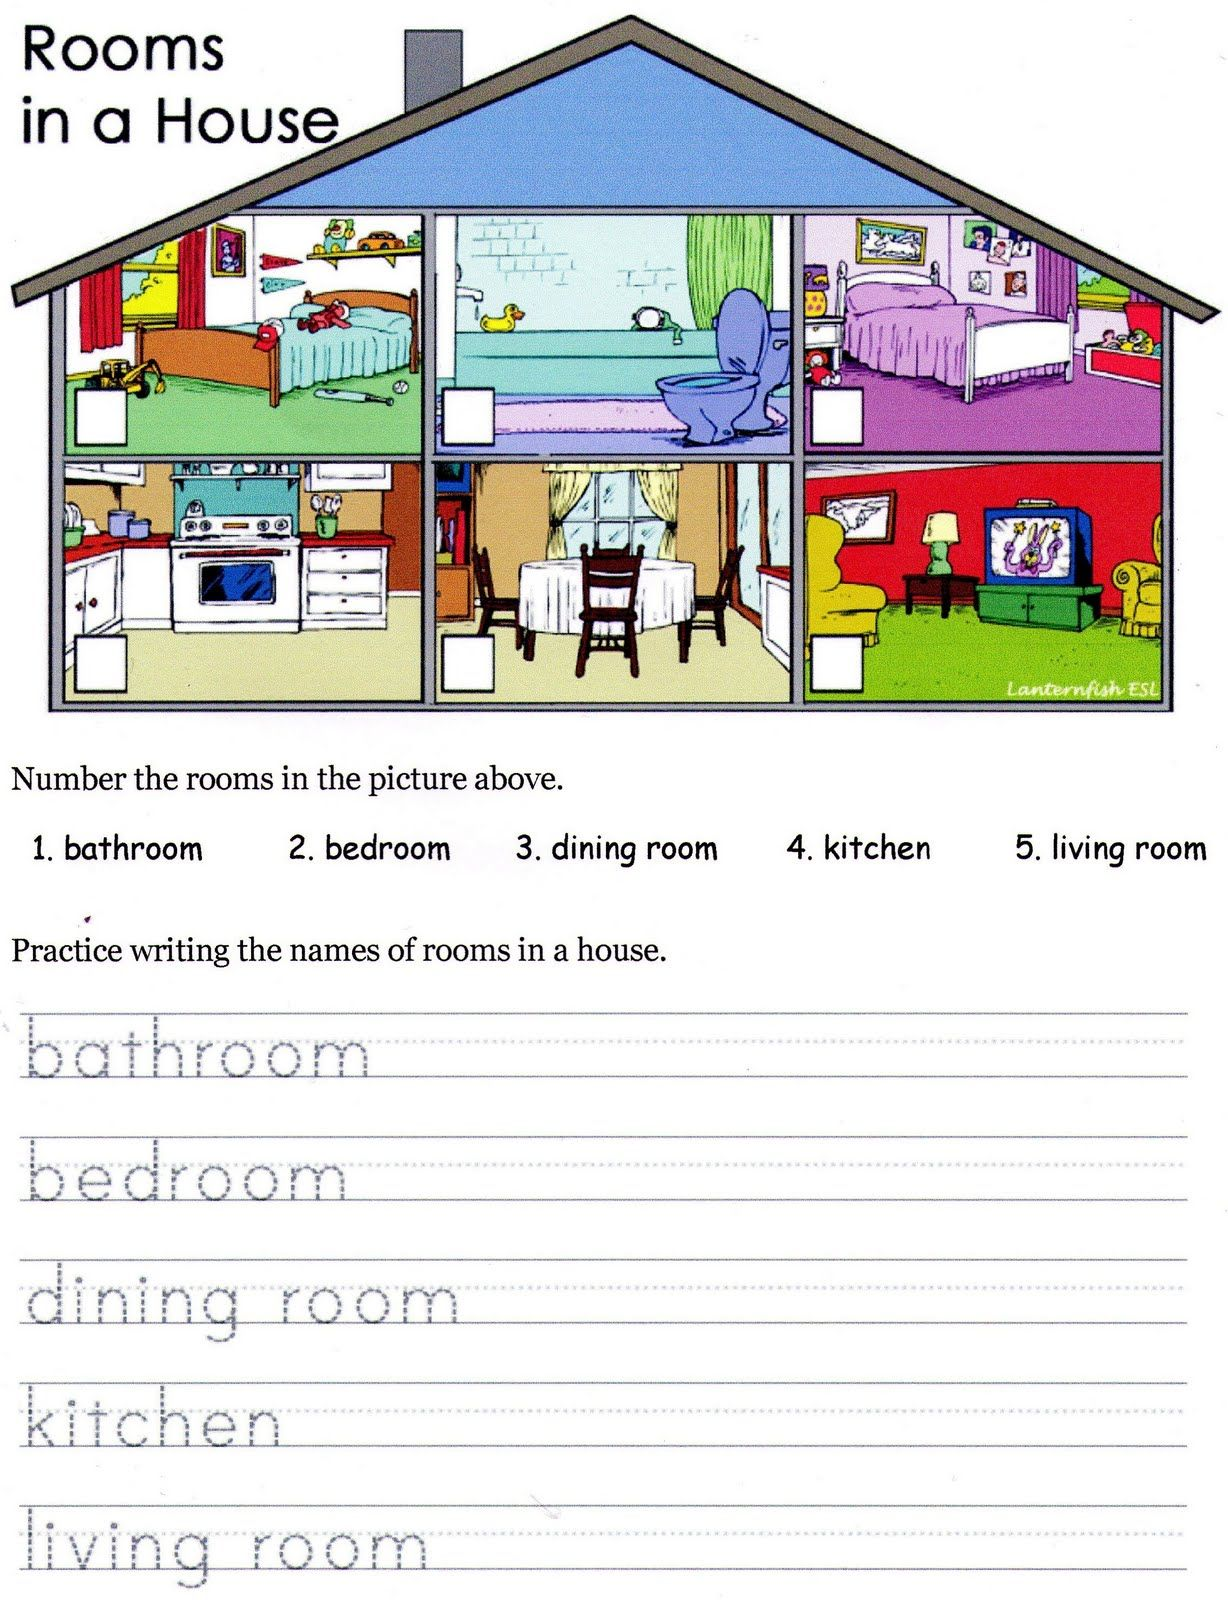 Joinin speakup teachernick the house song and worksheet Find a house